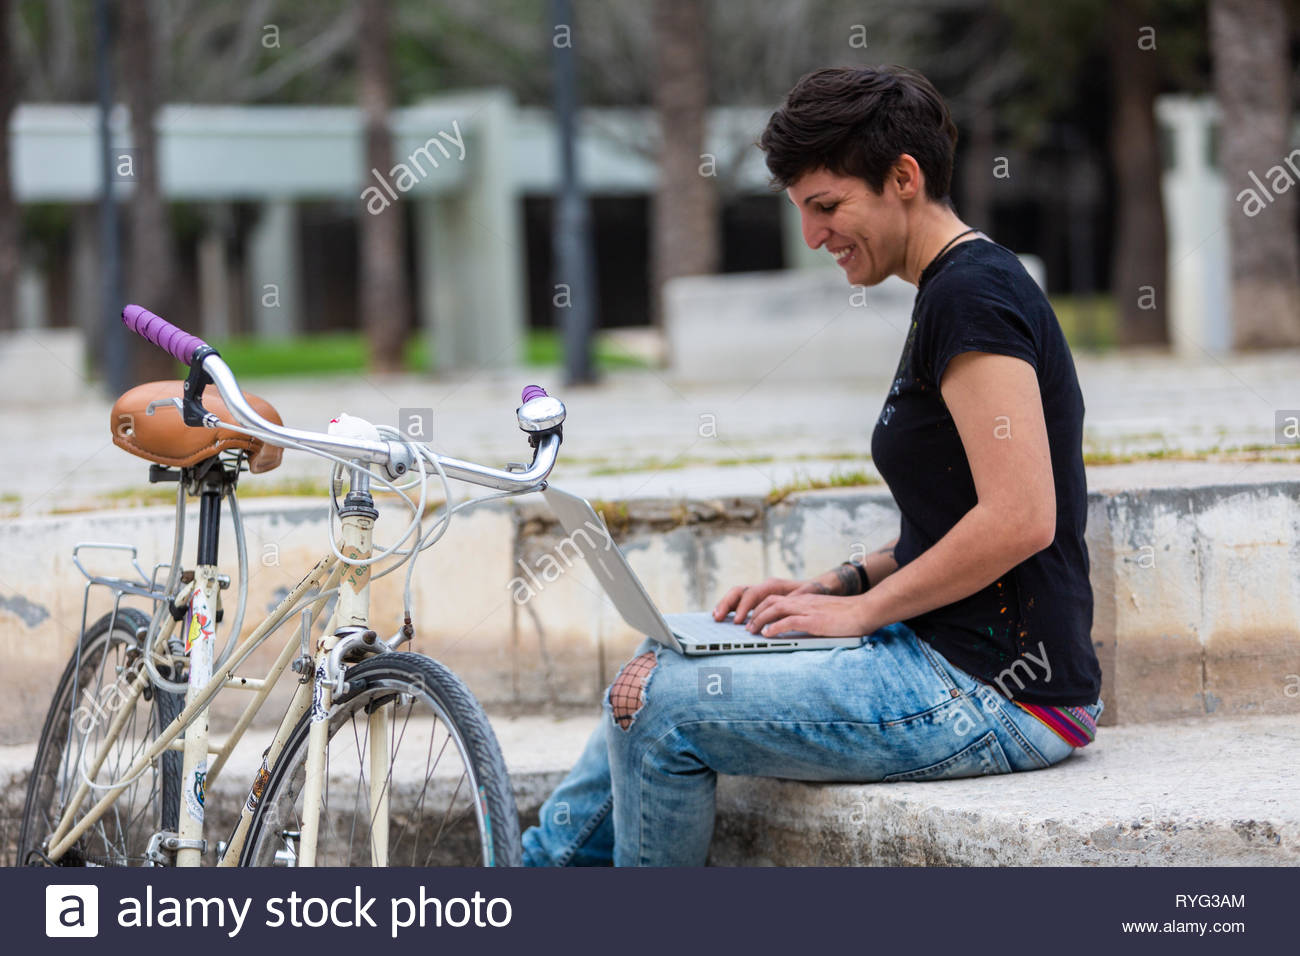 Woman with laptop and a bike outdoors - Stock Image